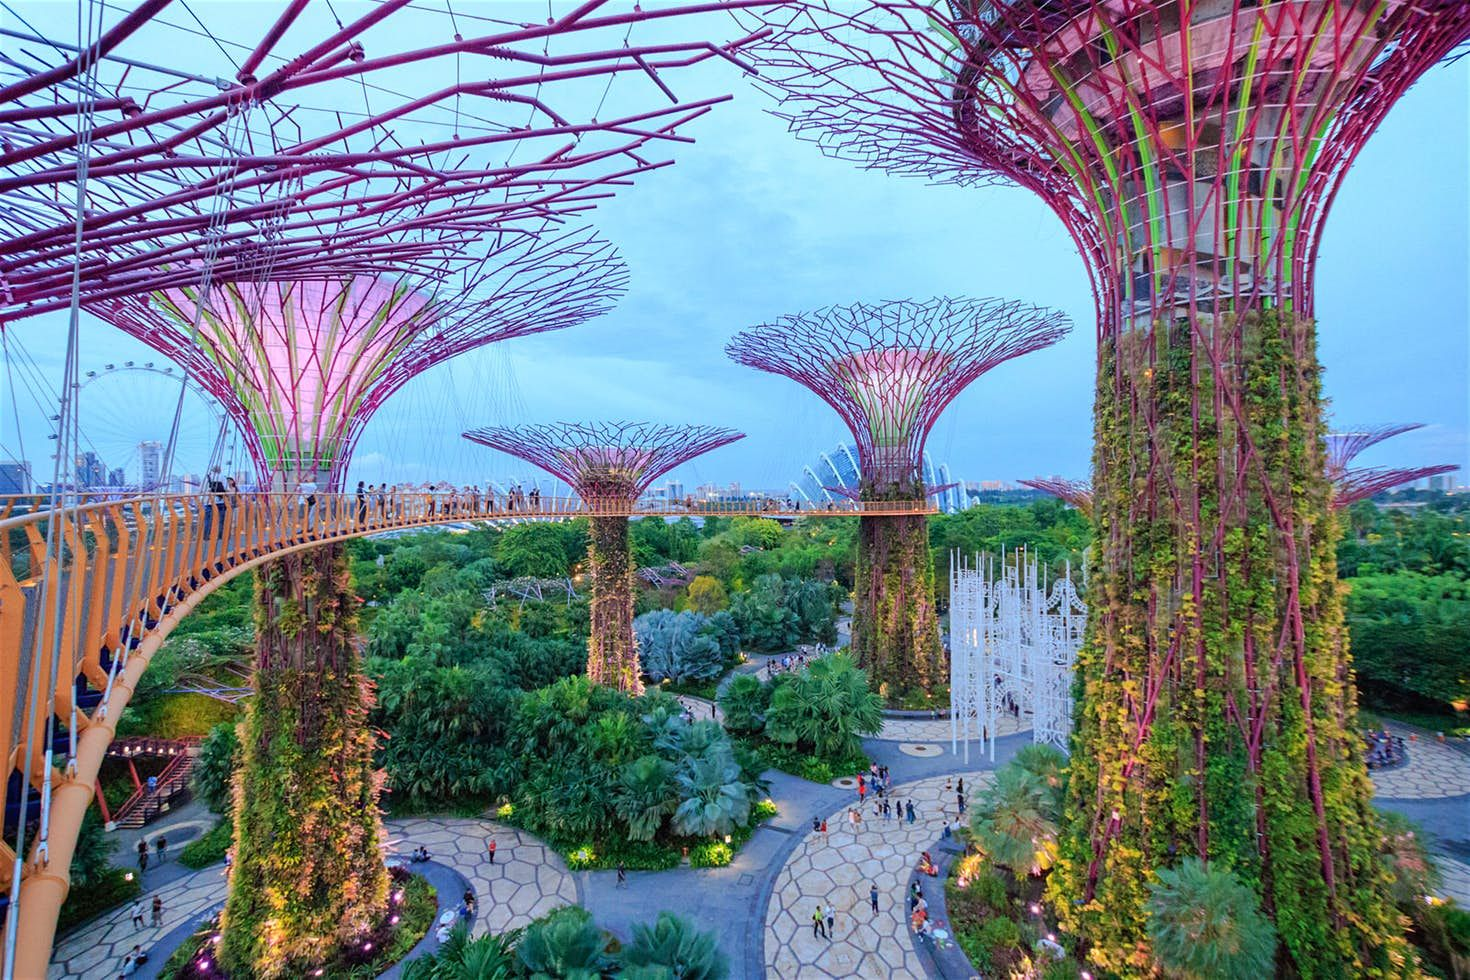 3b58c4a9a352fc1c8c990e95fd0e12cb - Best Time To Go To Gardens By The Bay